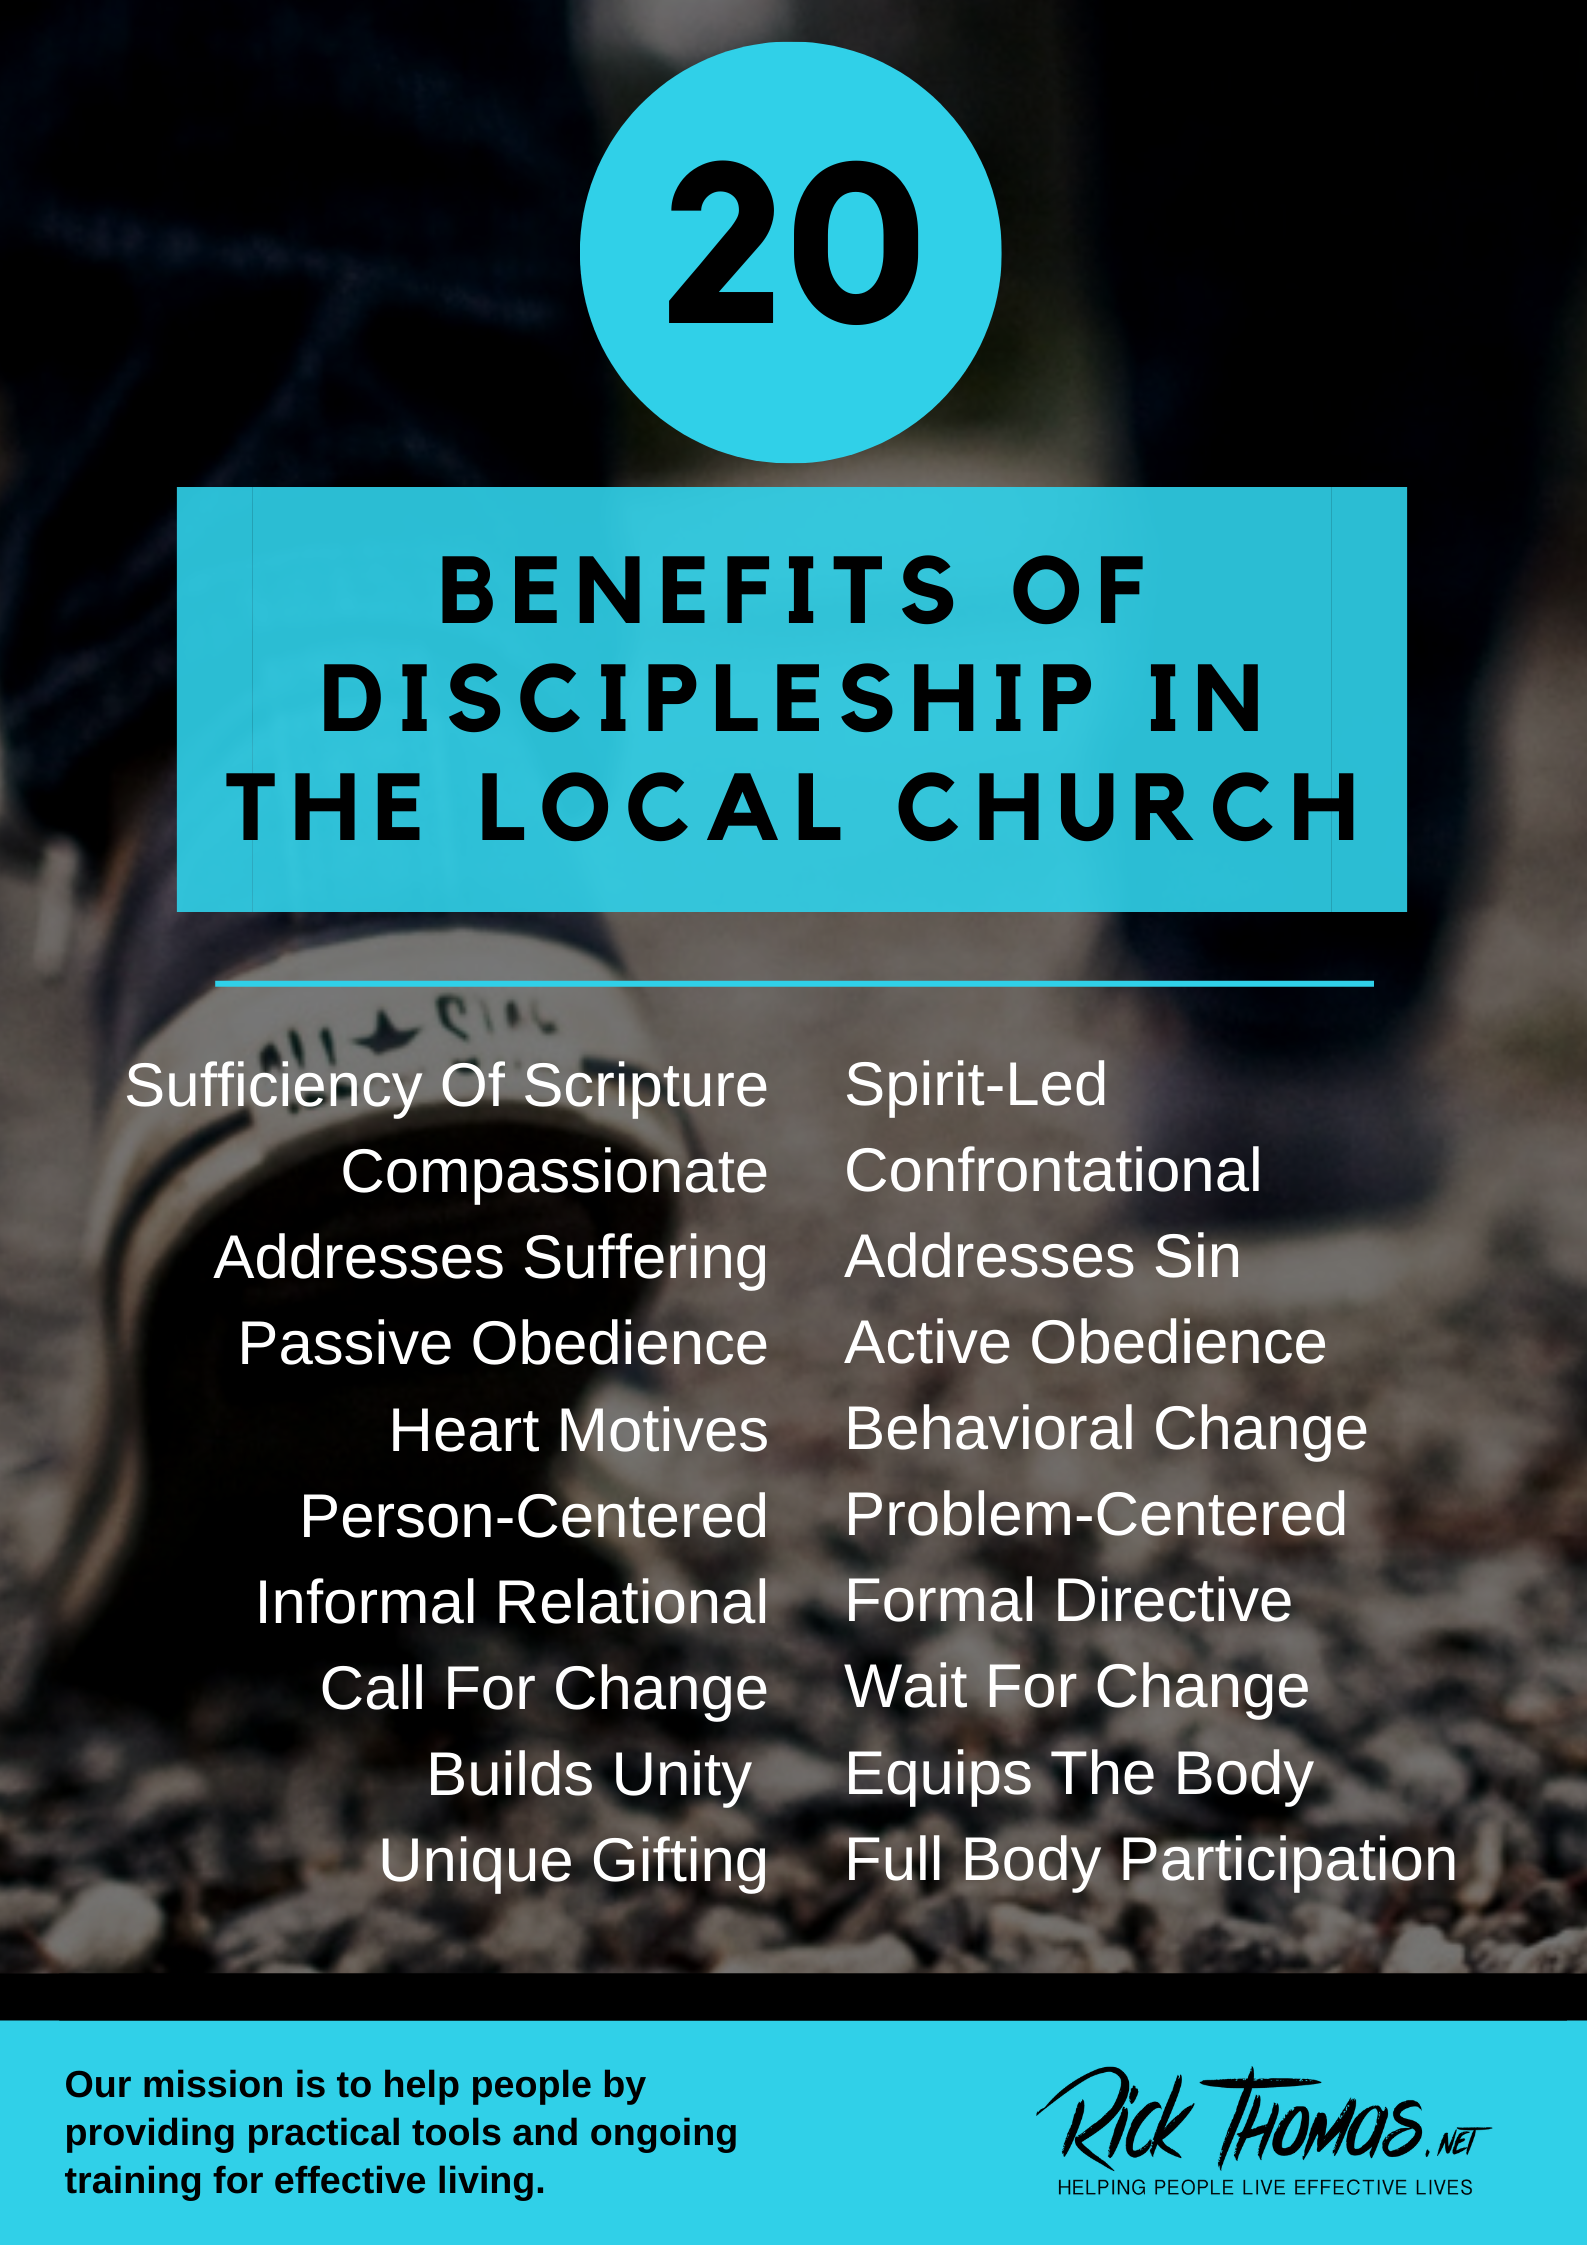 Benefits Of Discipleship In The Local Church